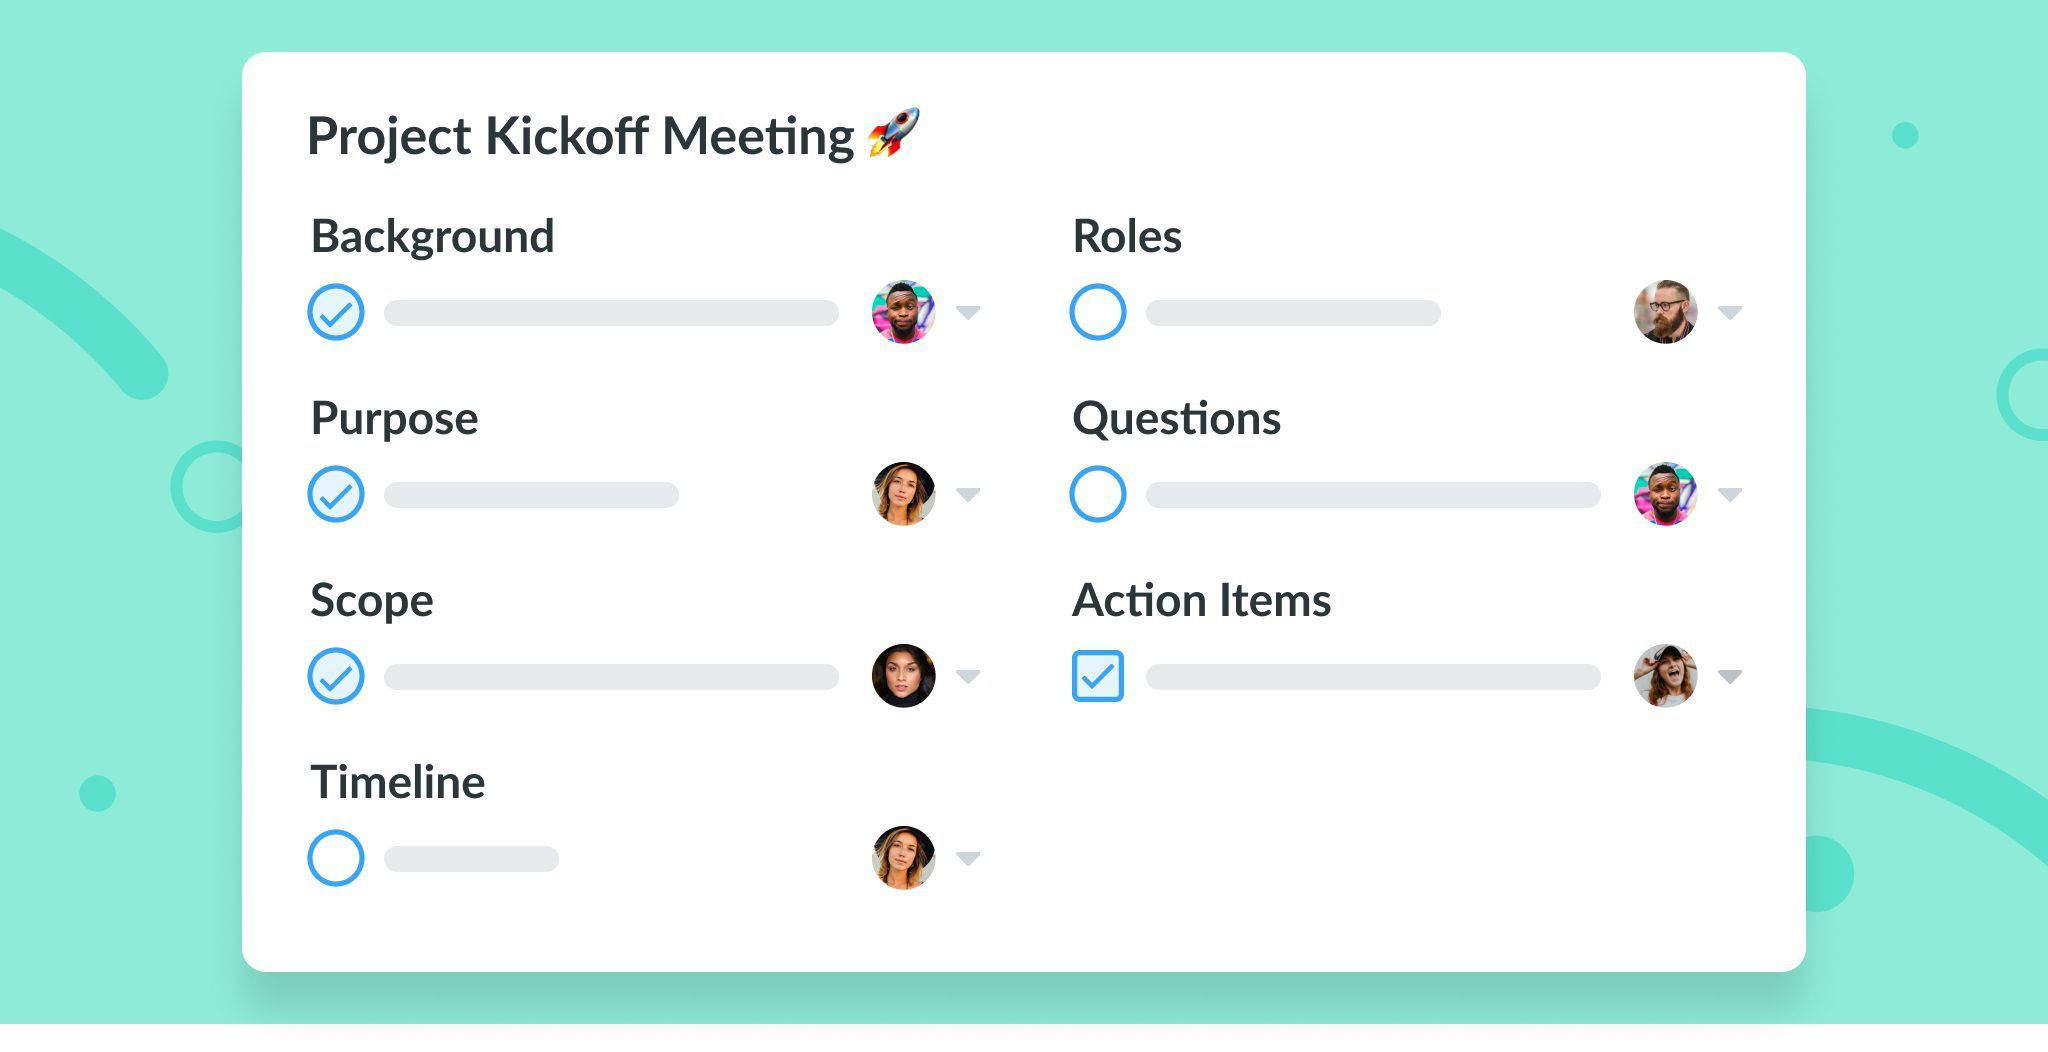 007 Incredible Project Kickoff Meeting Template Xl Photo  Xls ExcelFull